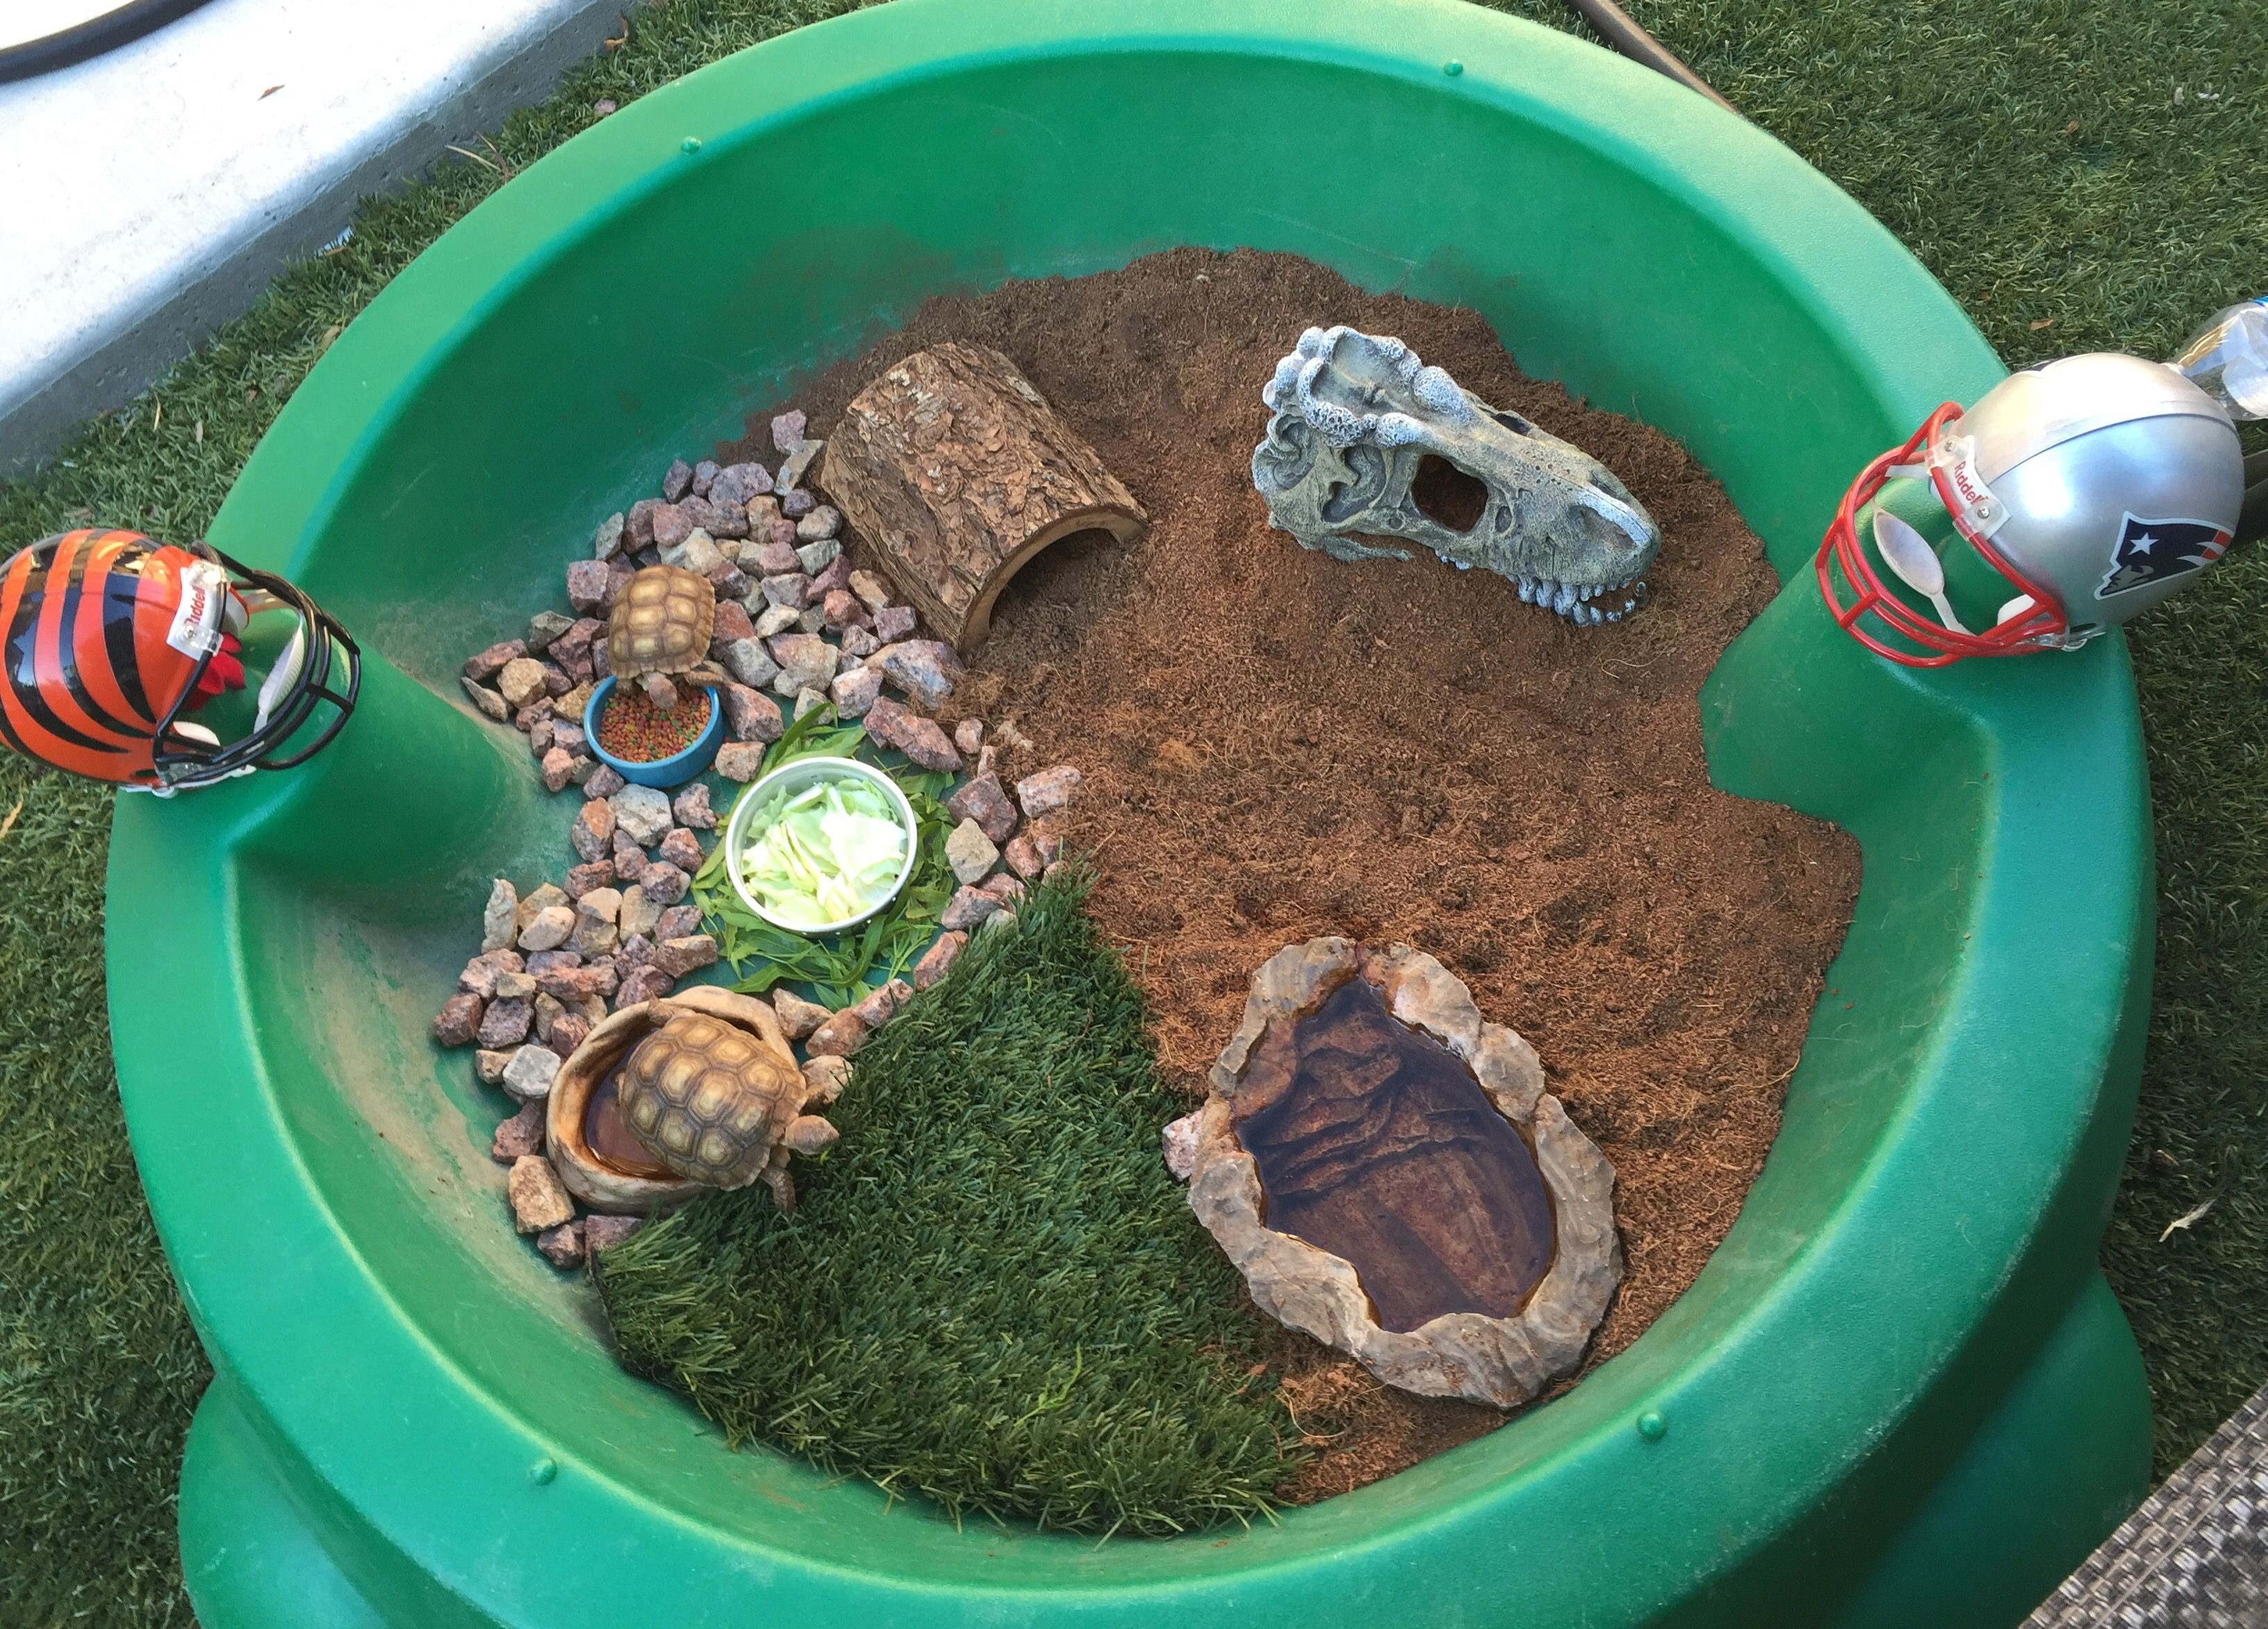 Pin by Lynn Whitelaw on Reptiles and critters   Tortoise ...